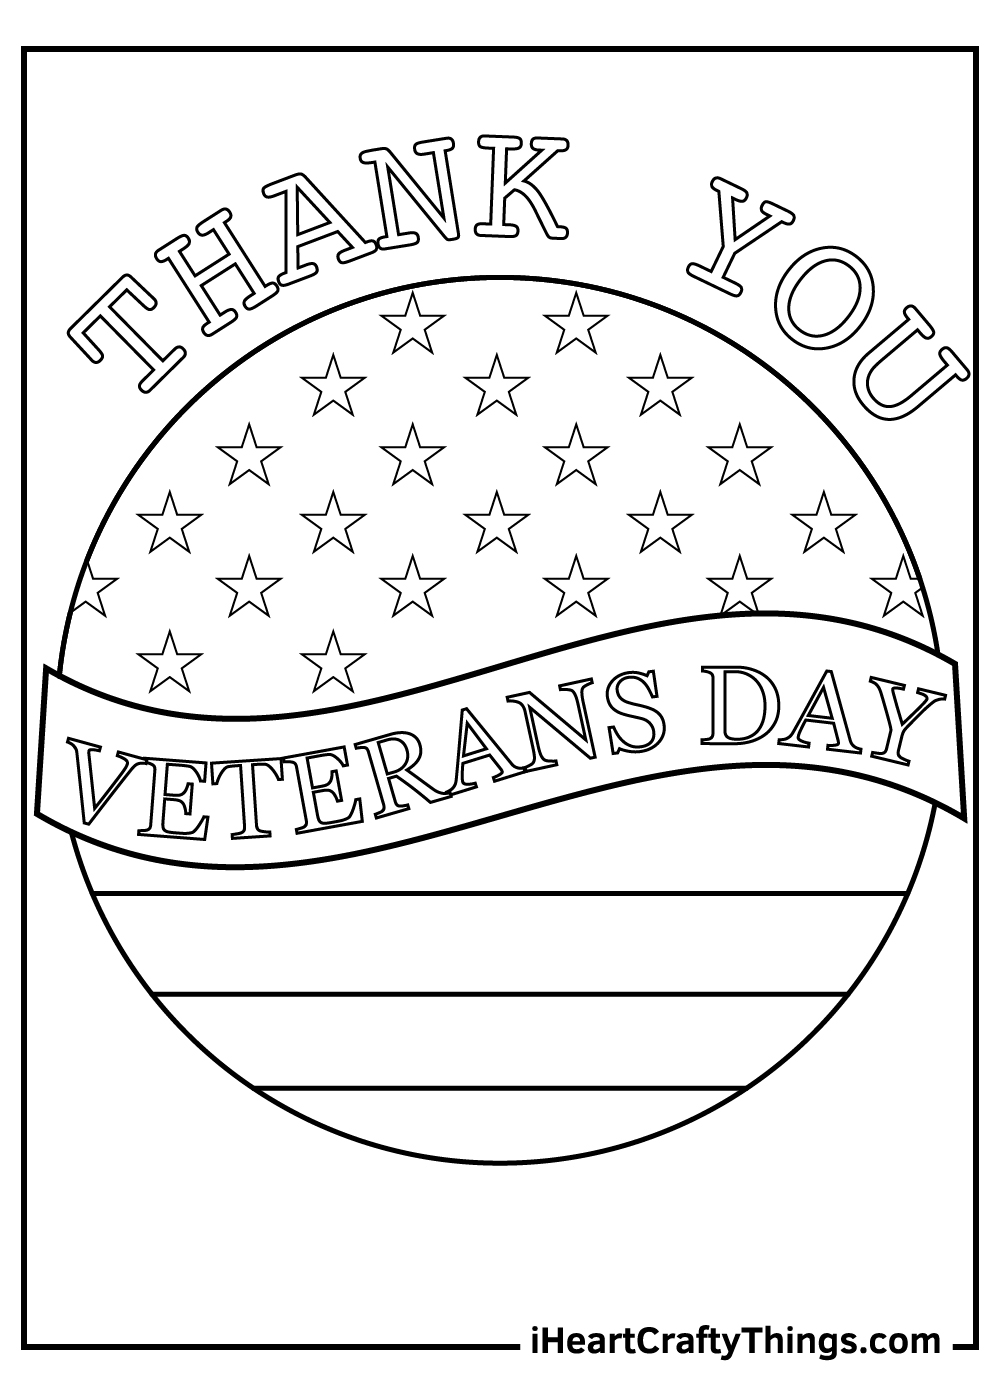 Thank You Veteran's Day Coloring Pages